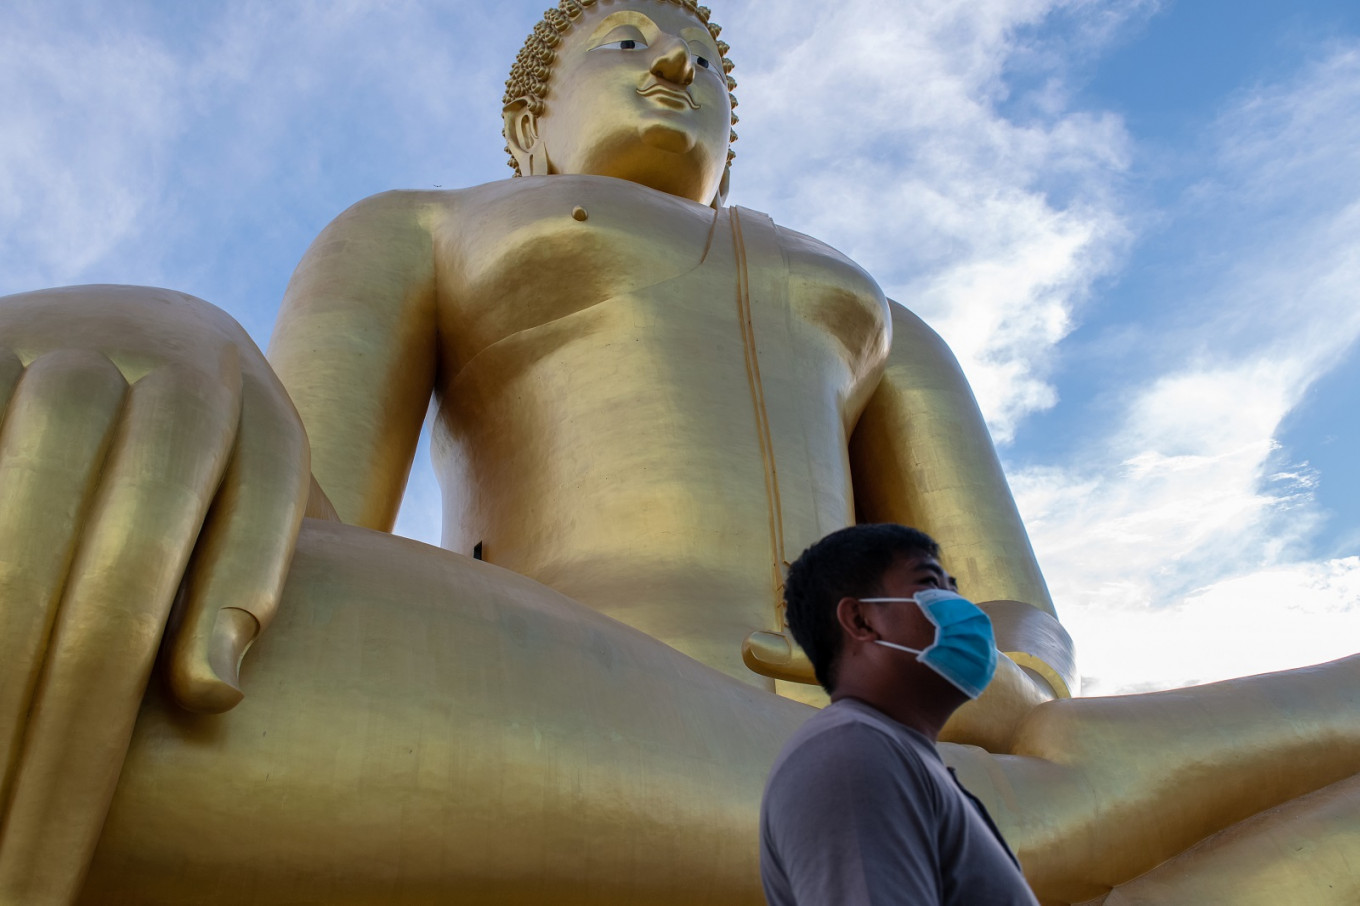 Nearly one-third of tourism-related businesses in Thailand 'may shut down permanently'